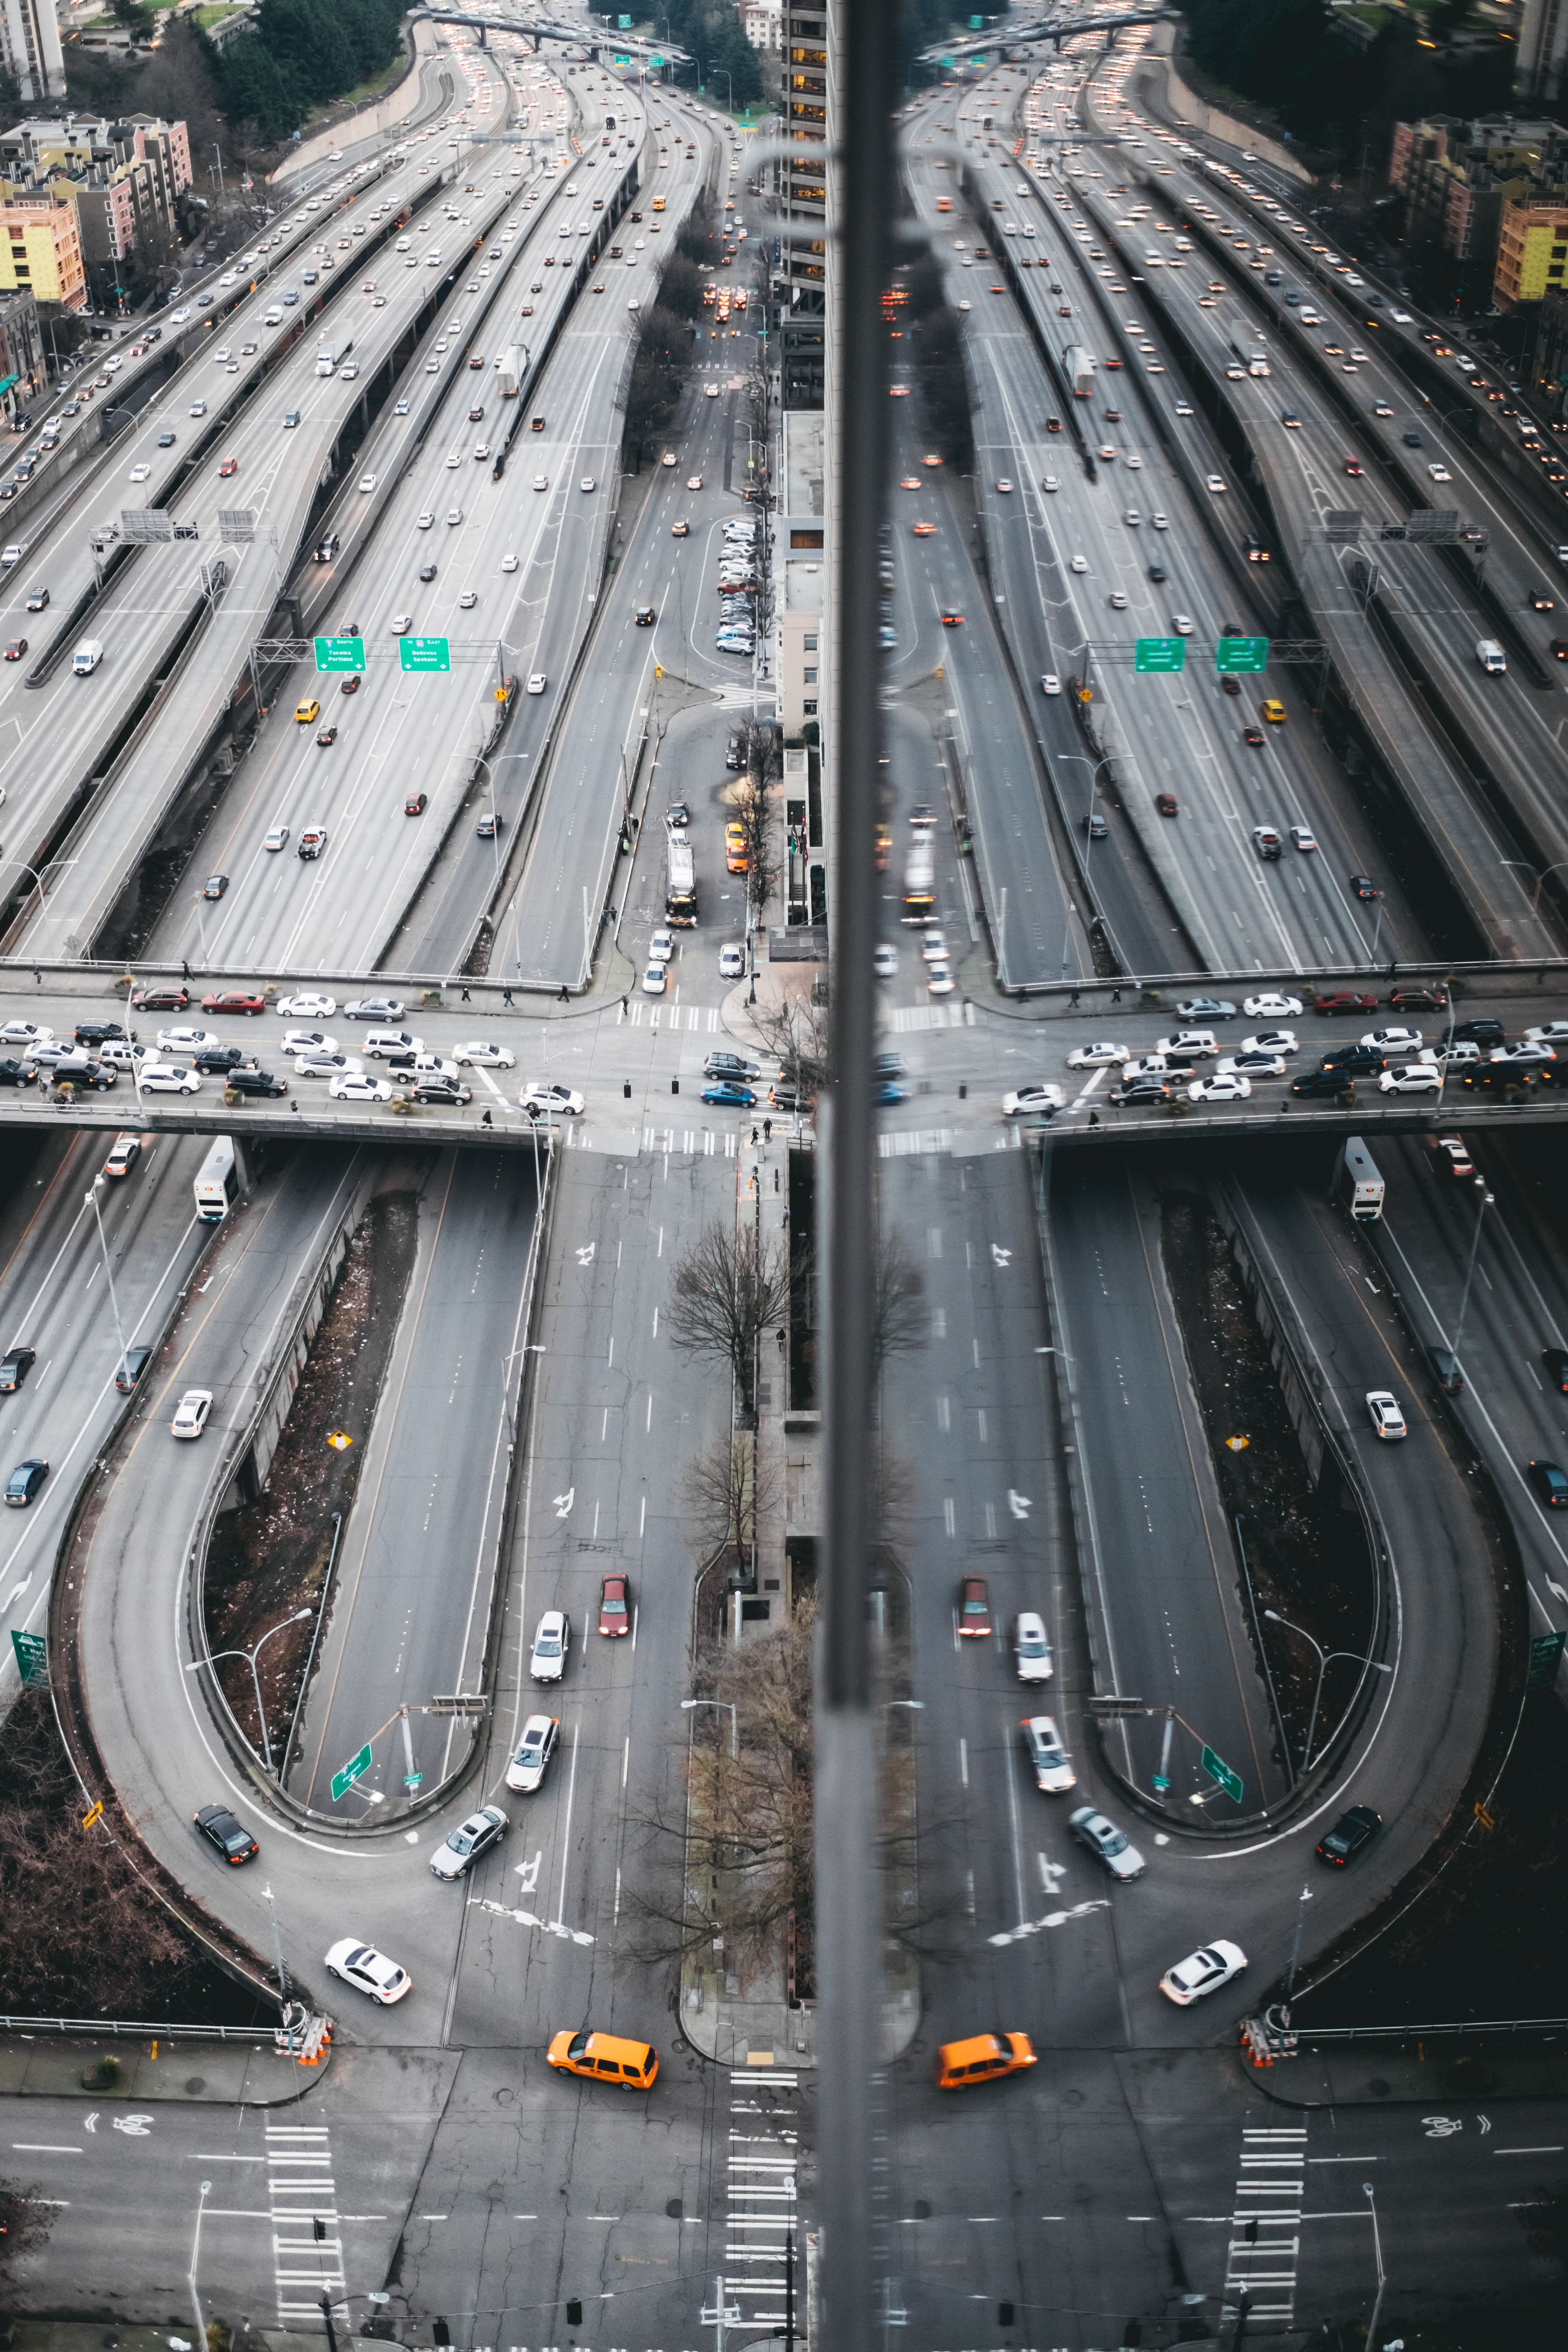 Highway roads reflect in buildings to form loops and lines